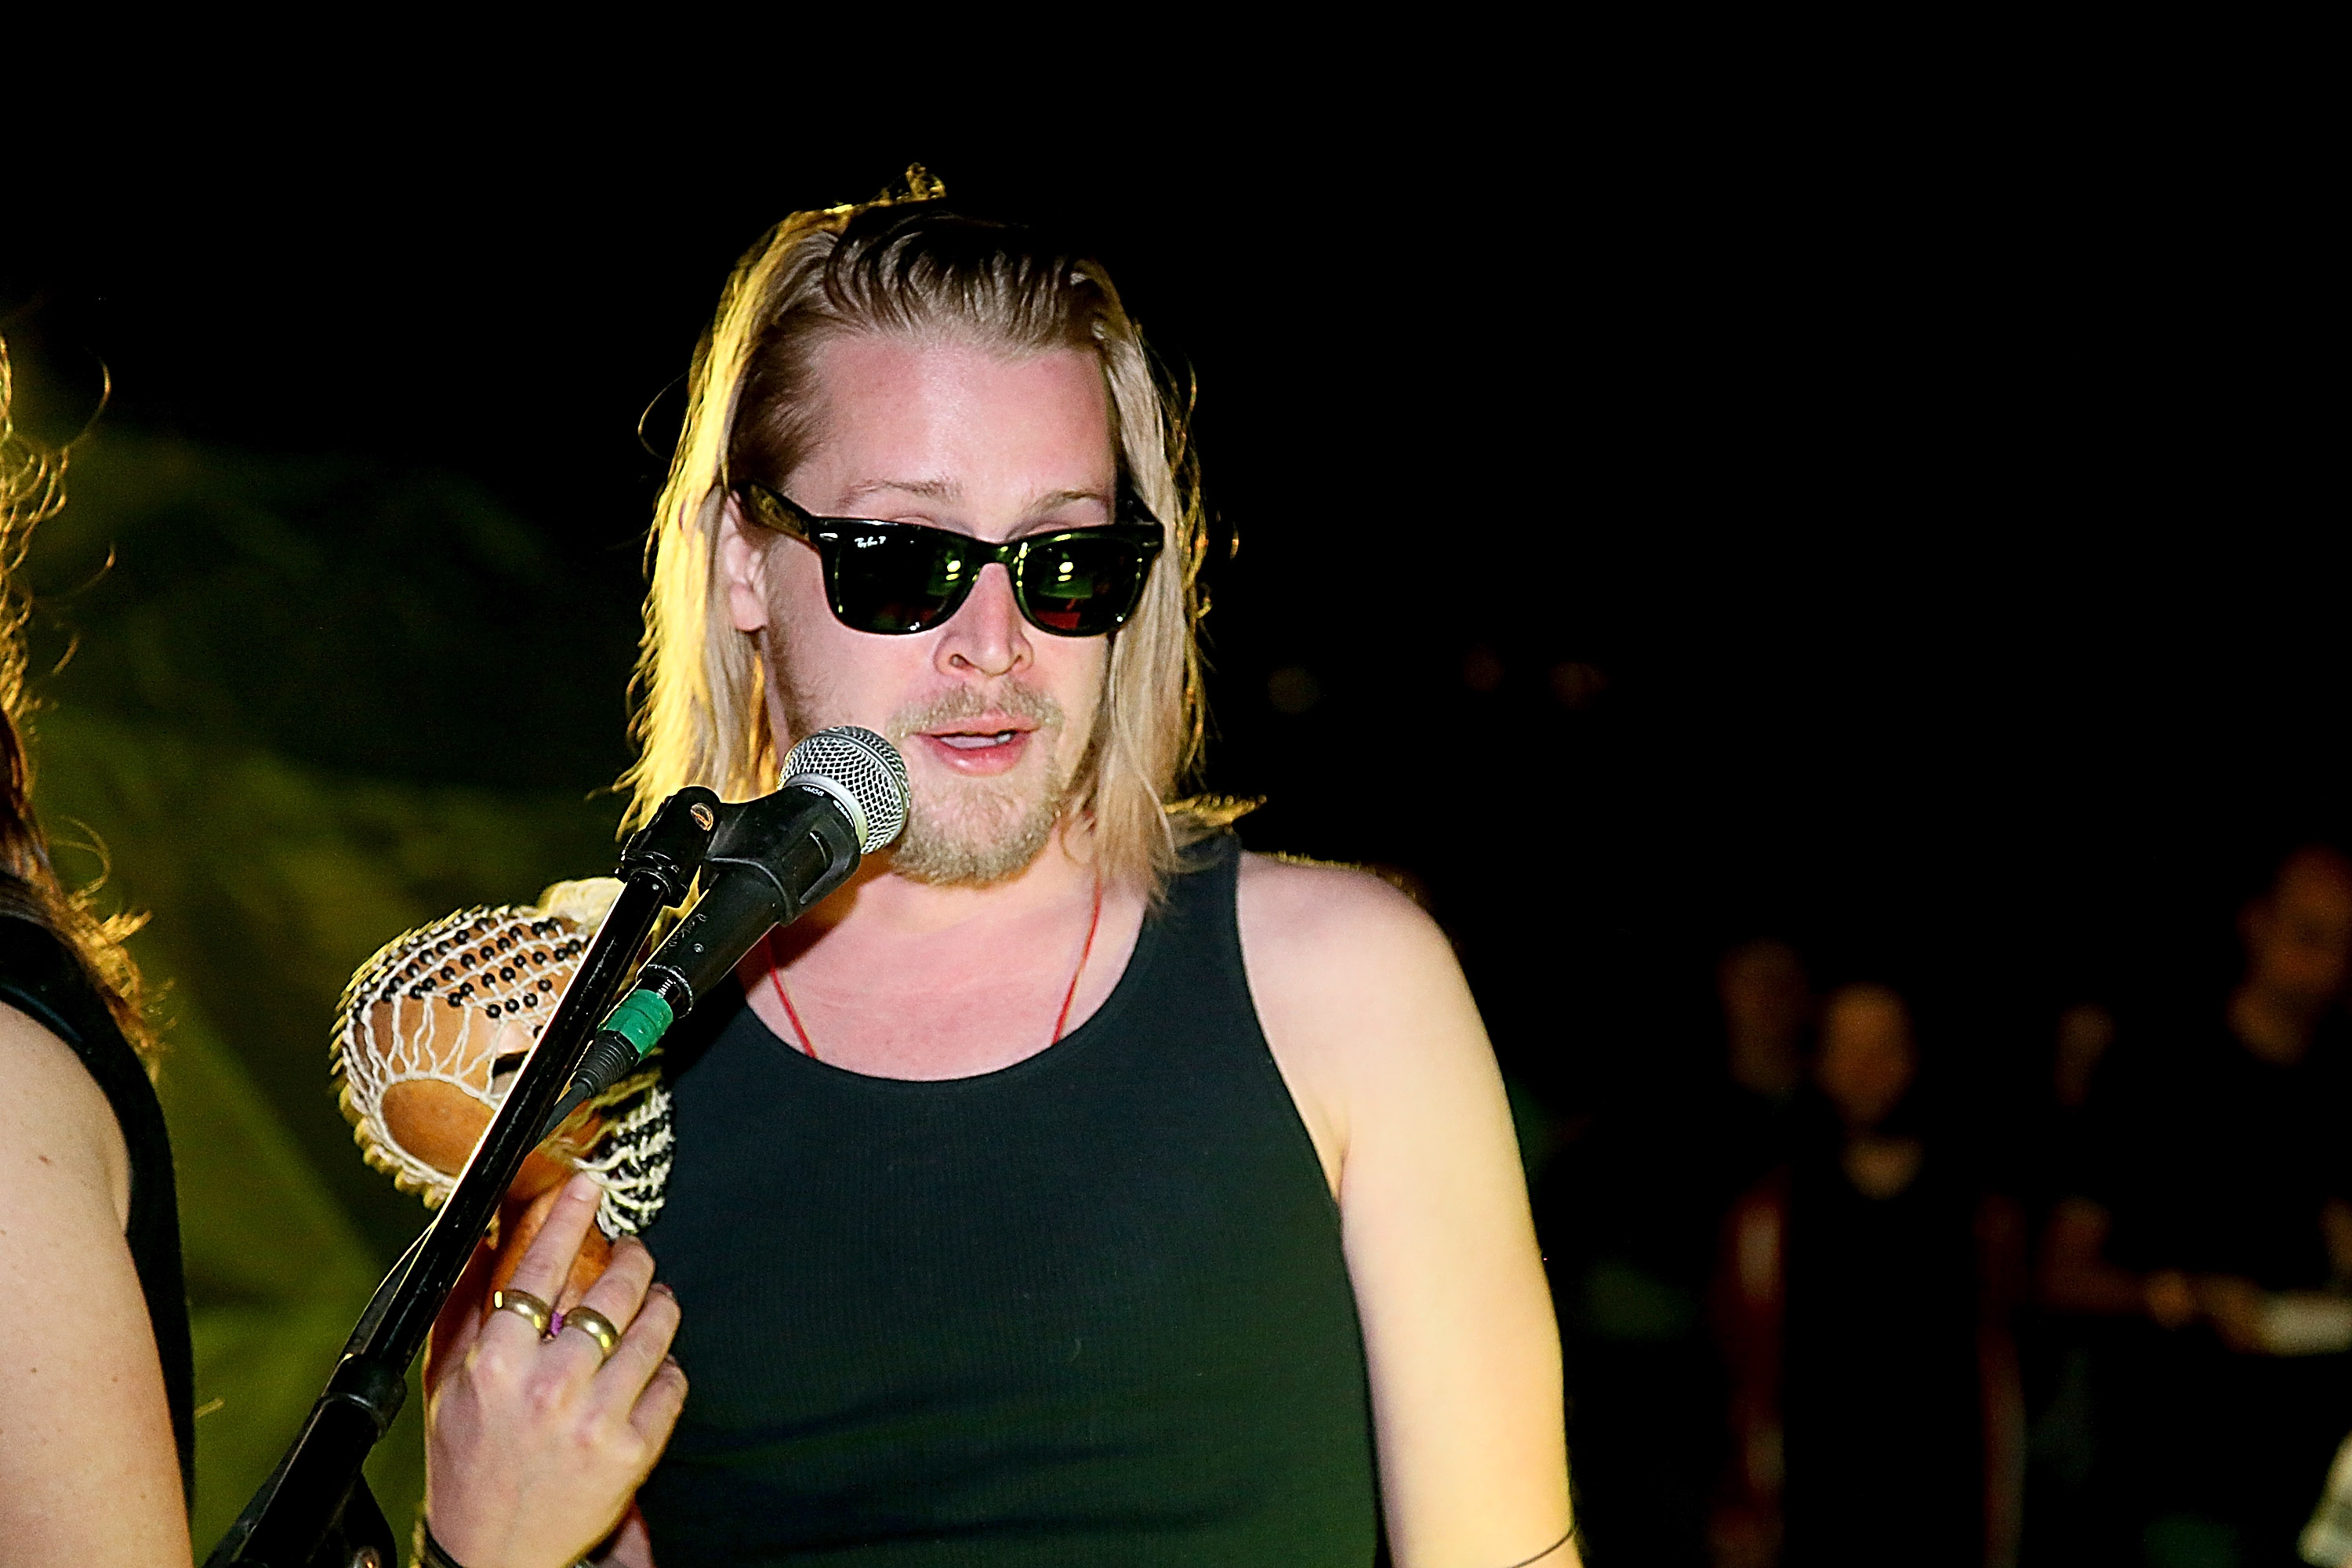 Macaulay Culkin performs with Pizza Underground at Unconventional Oven on Jan. 31, 2014 in Austin, Texas.